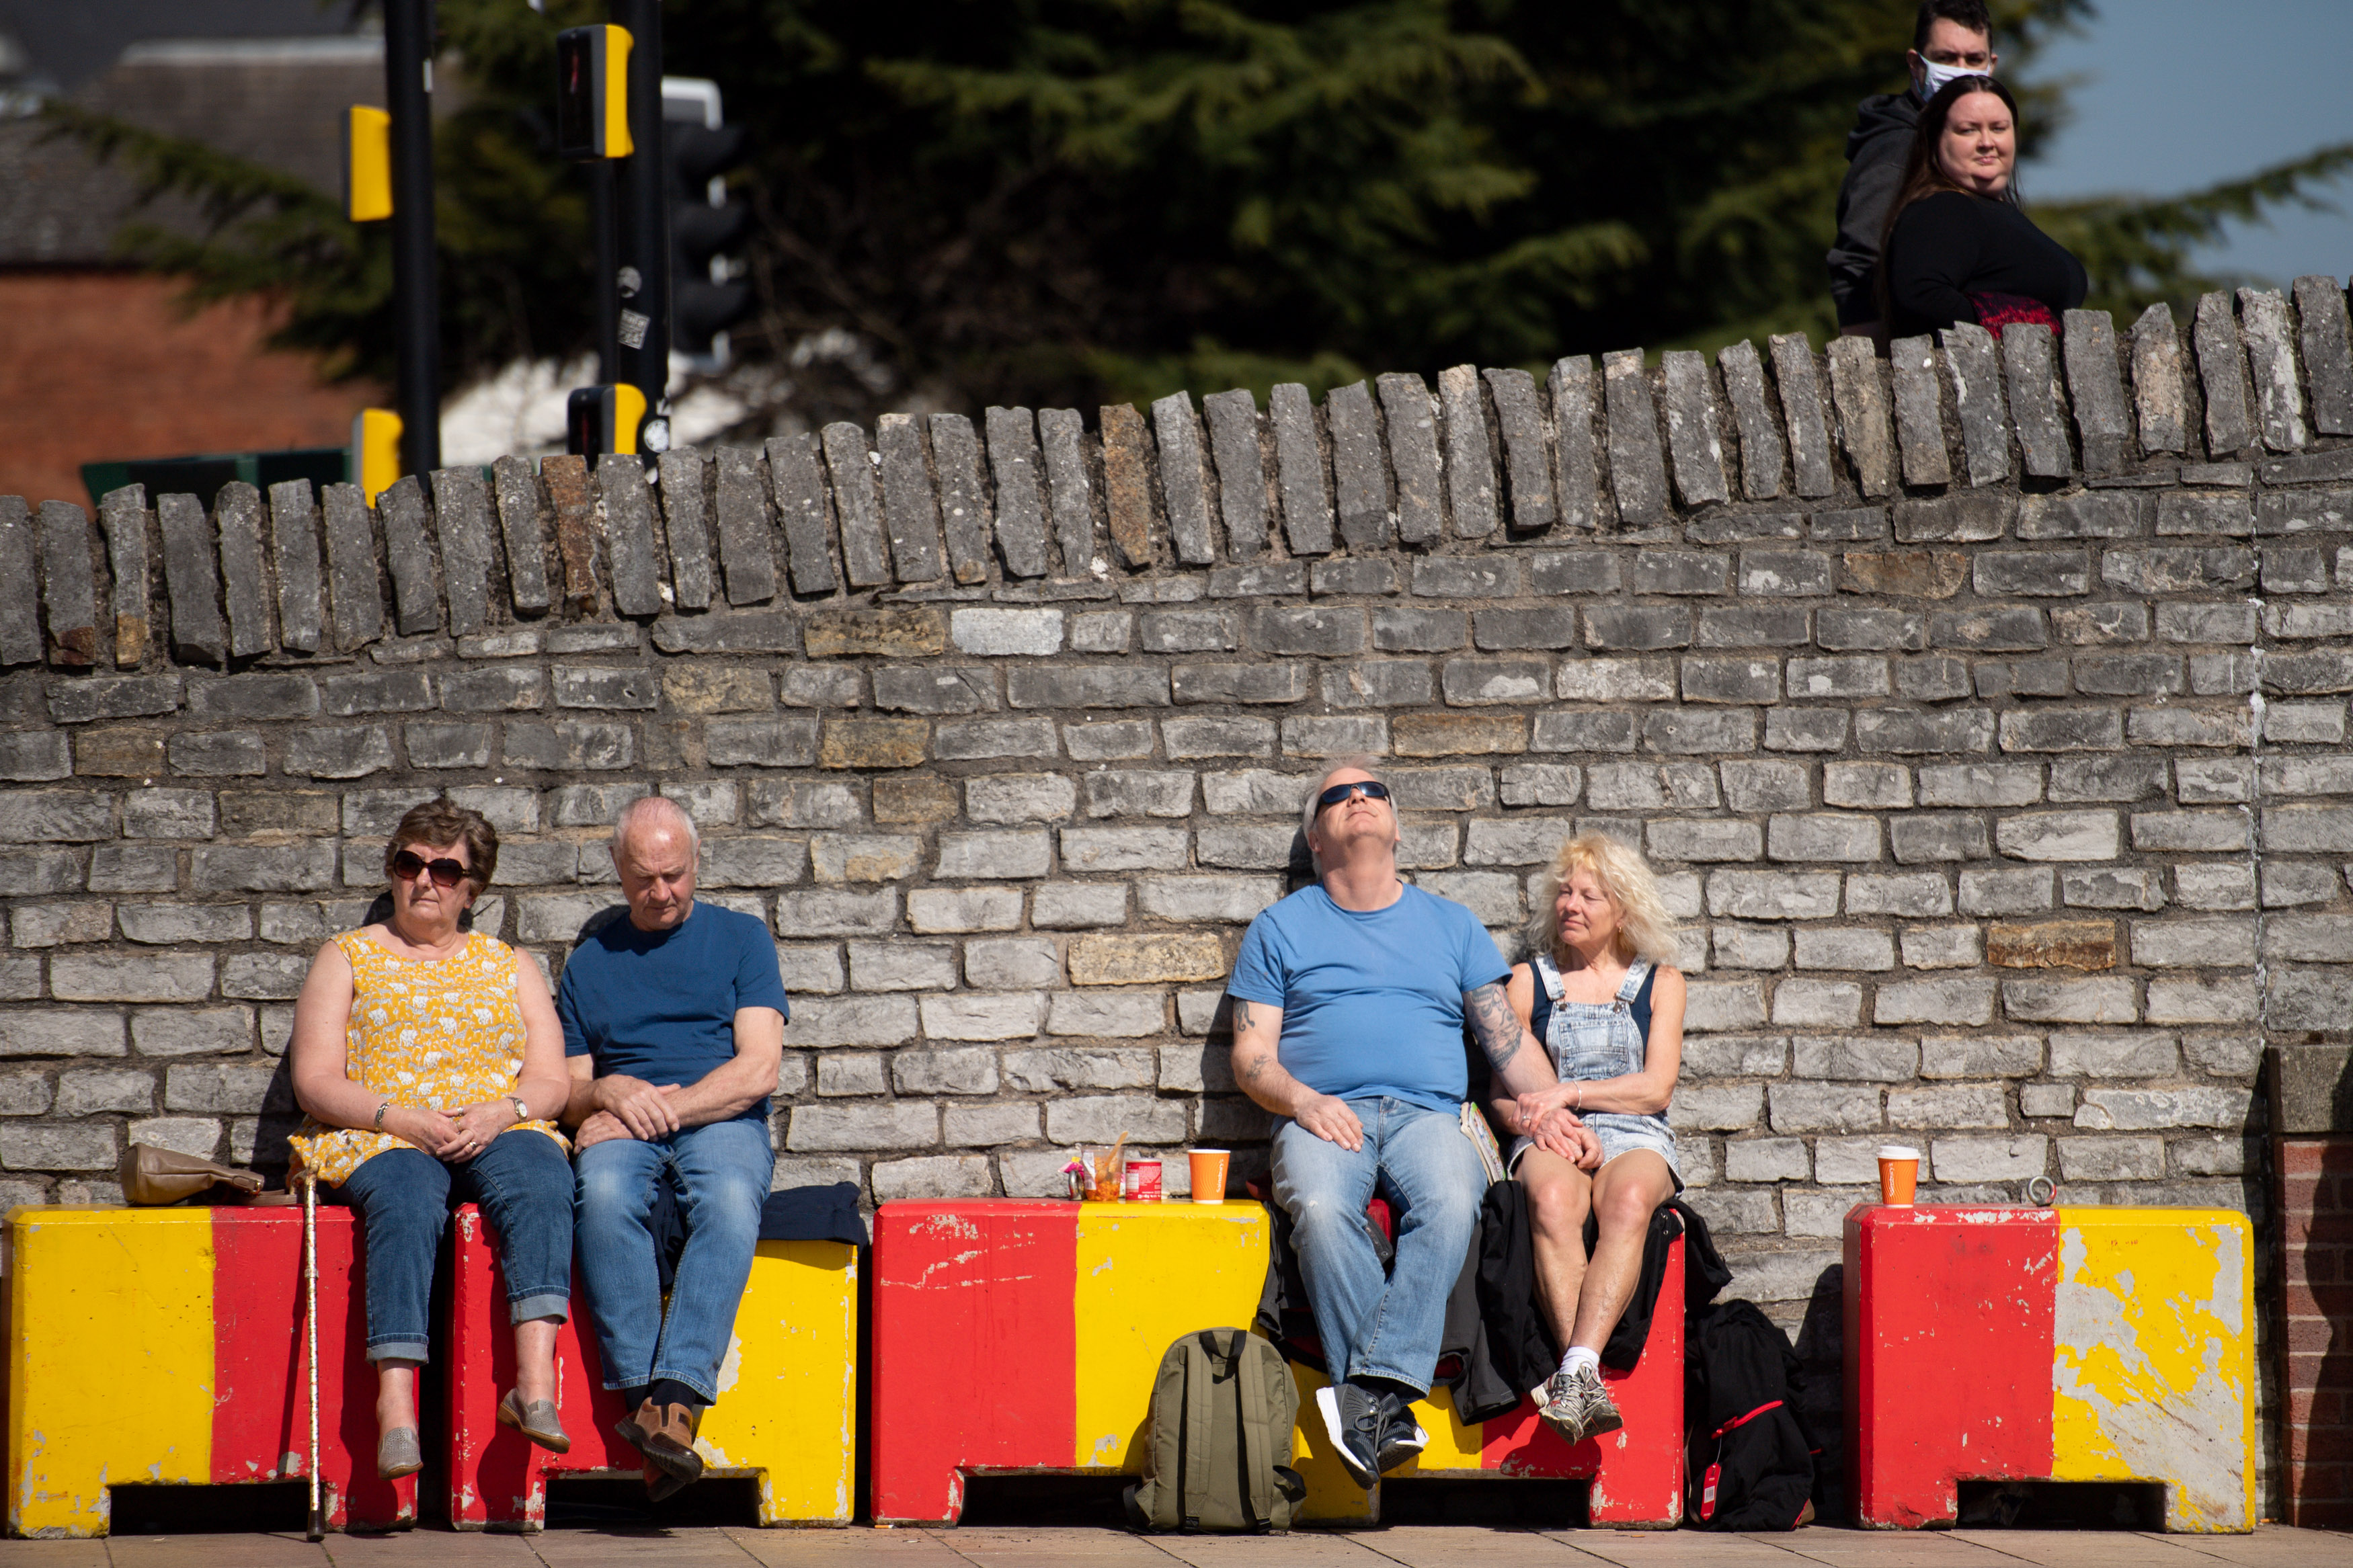 <p>People sat enjoying the sunshine in Stratford-upon-Avon in Warwickshire. Picture date: Sunday April 4, 2021.</p>